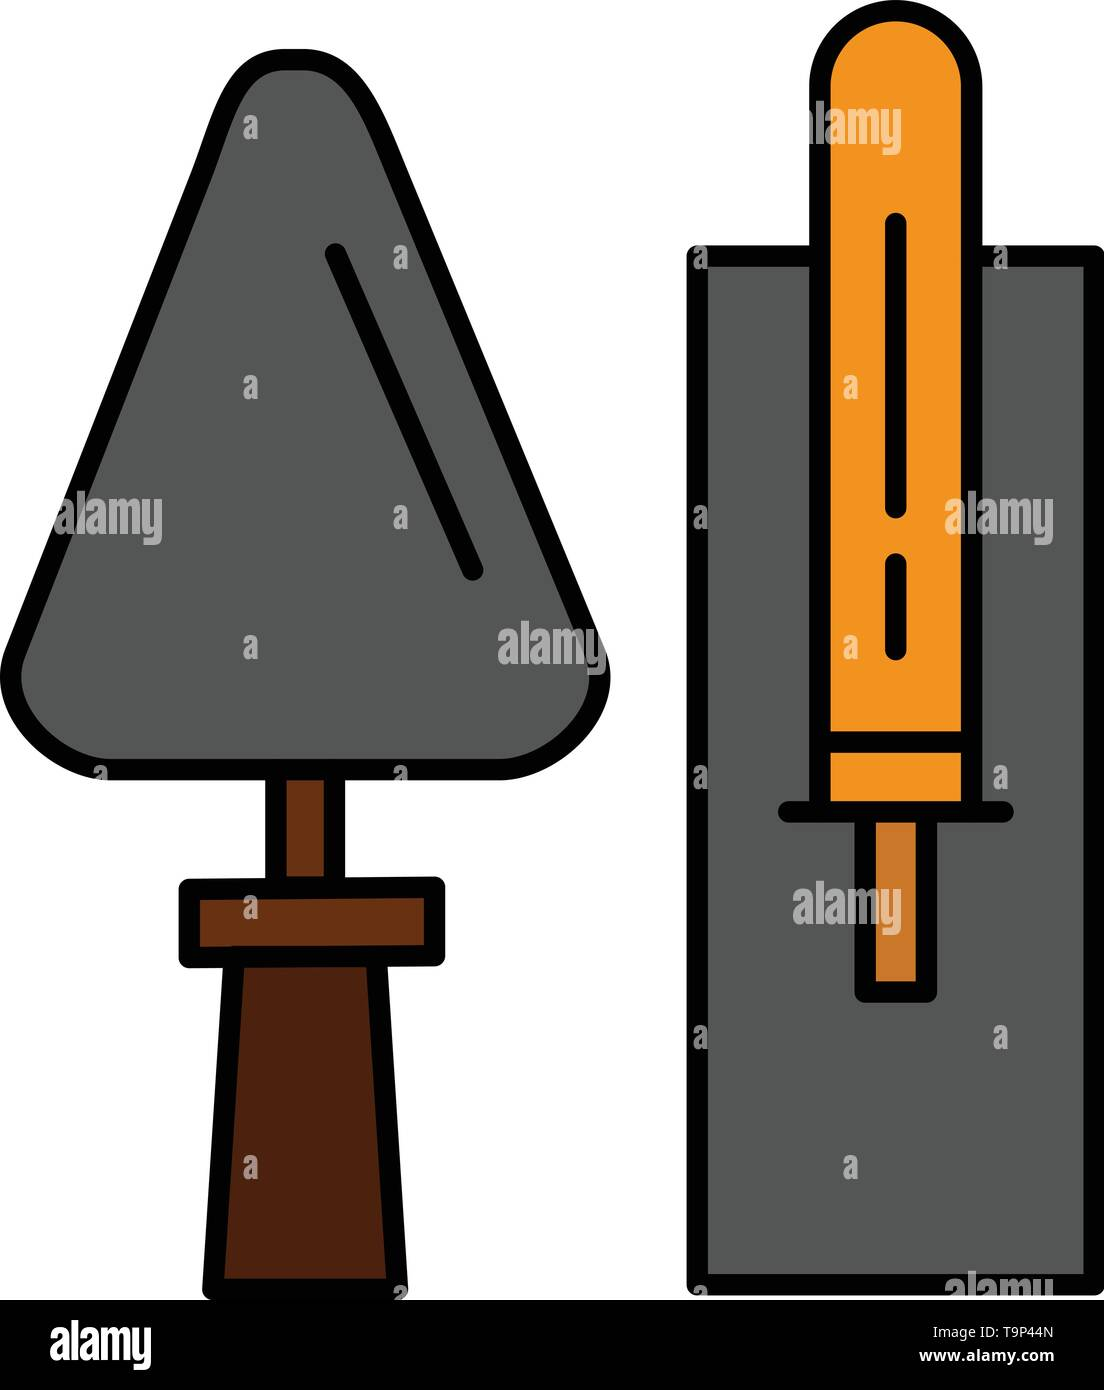 Trowel, Brickwork, Construction, Masonry, Tool  Flat Color Icon. Vector icon banner Template - Stock Image